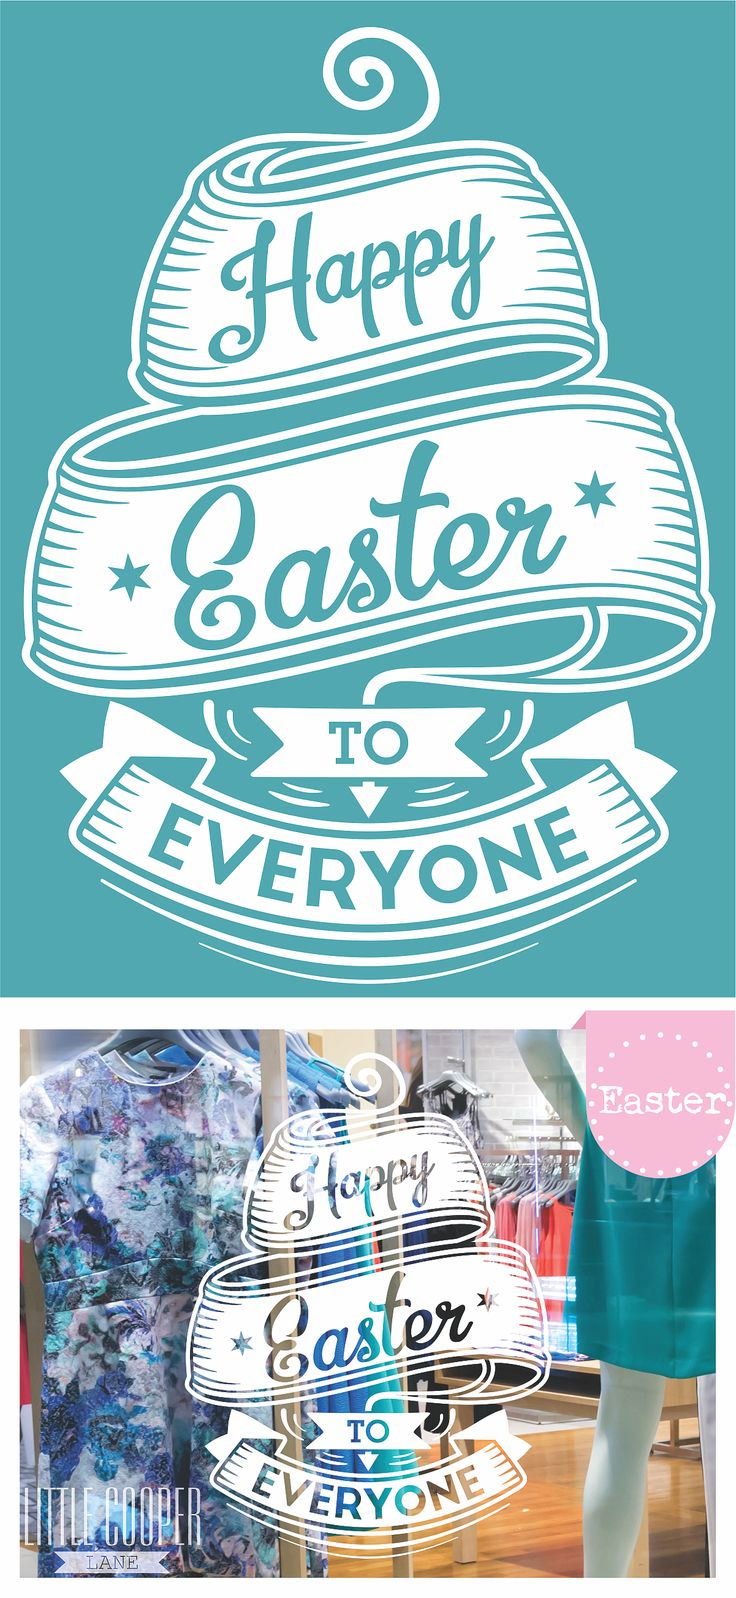 HAPPY EASTER TO EVERYONE Shop Front Window Decal! This Decal is ideal for shop fronts as well as internal walls within your store. Cheap and easy way to spread a bit of Easter love.